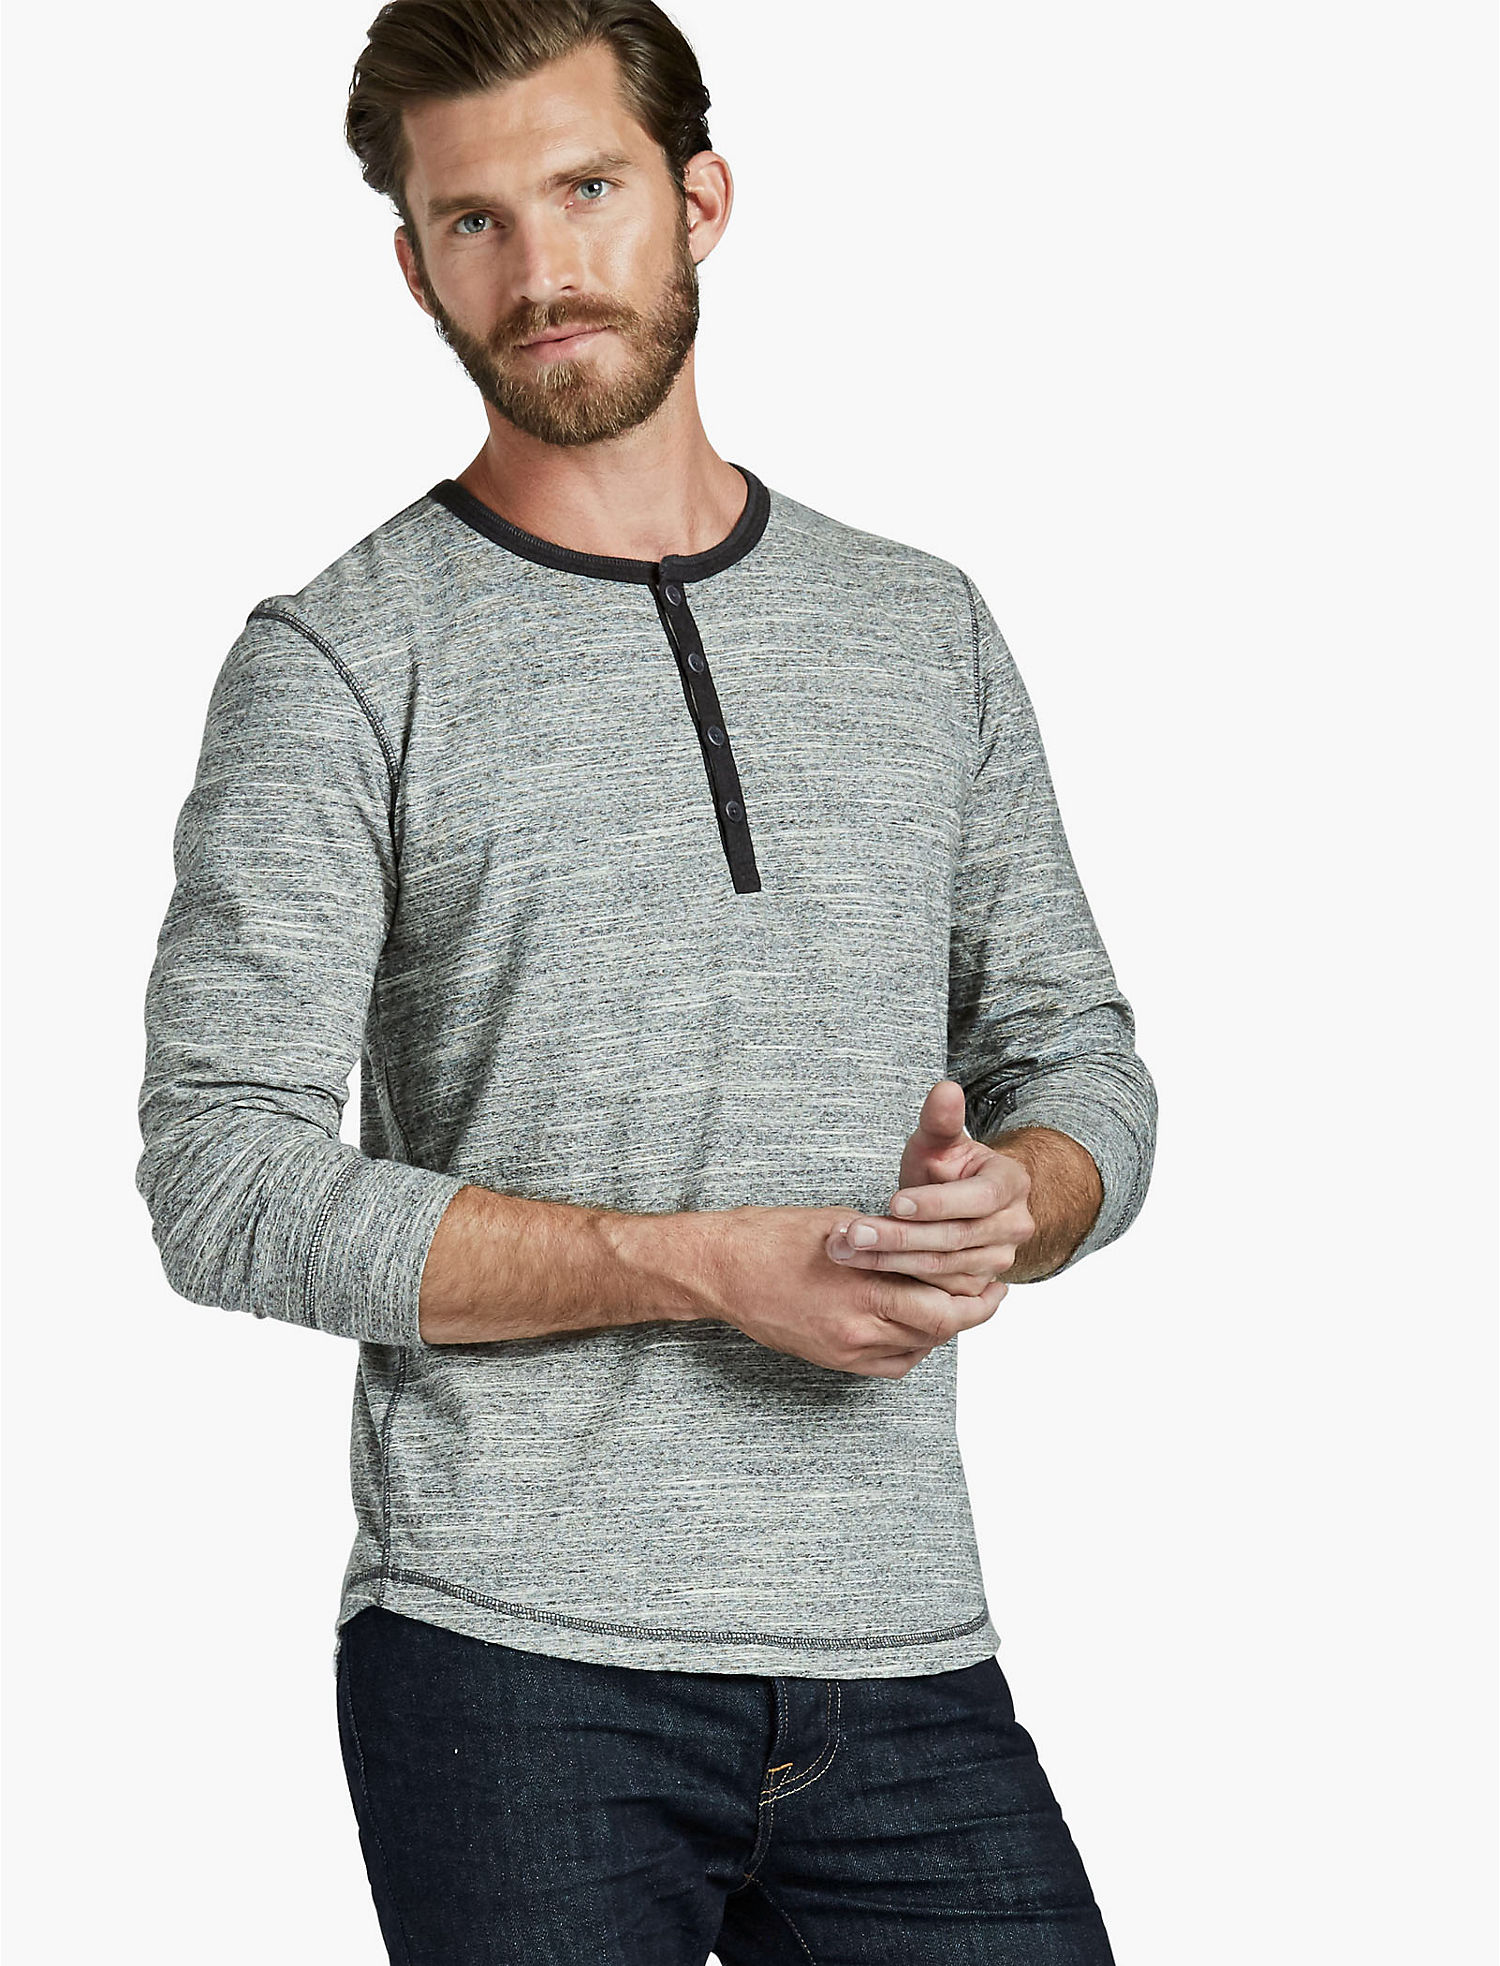 Lucky Brand Mens Huntington Henley (Heather Grey or Military Olive)